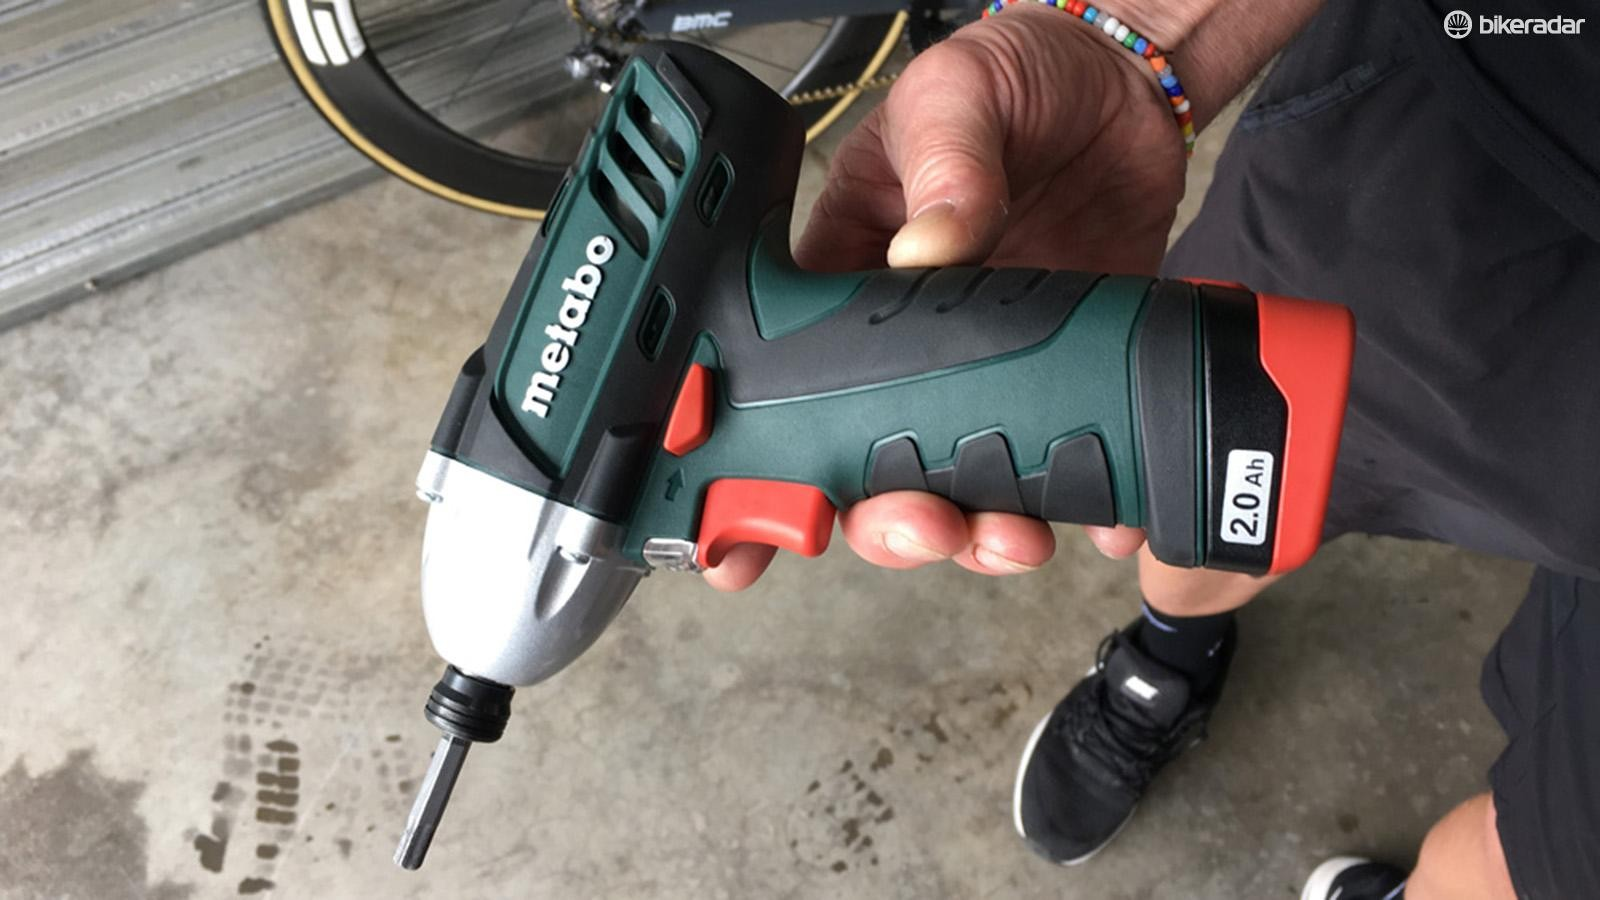 The power tools are compact enough to hold in one hand, as well as a set of wheels